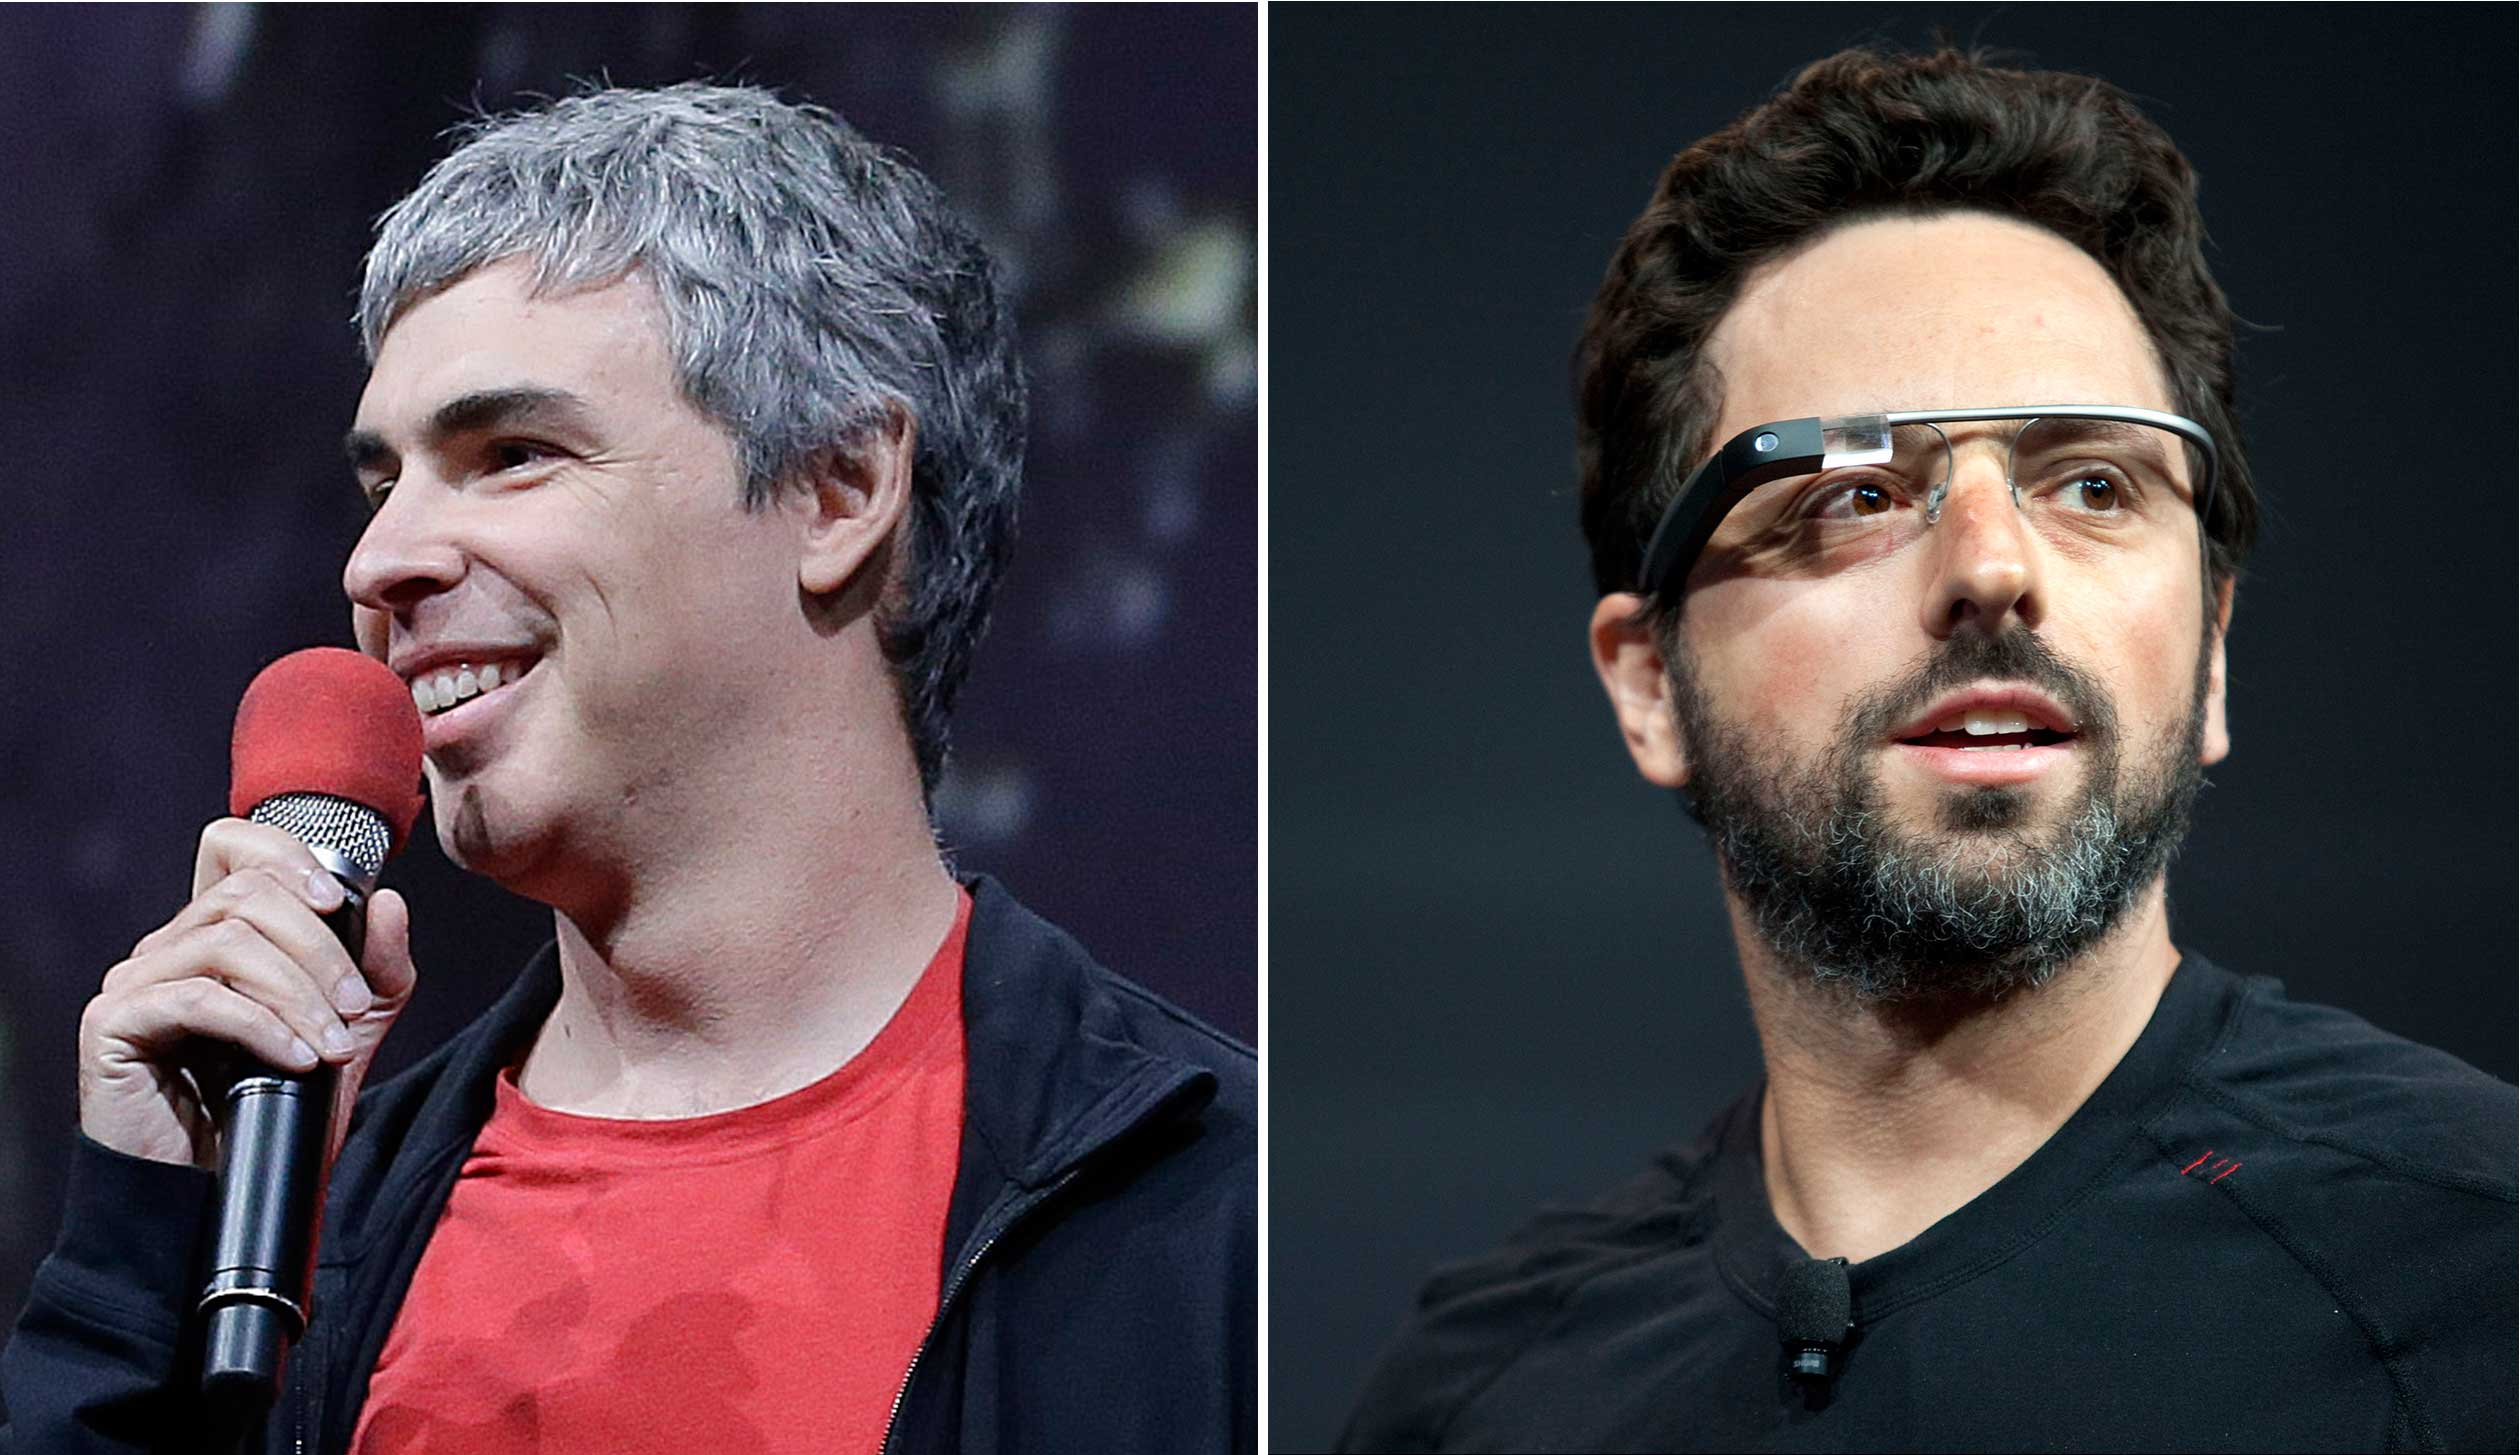 Google co-founders Larry Page, left, and Sergey Brin.